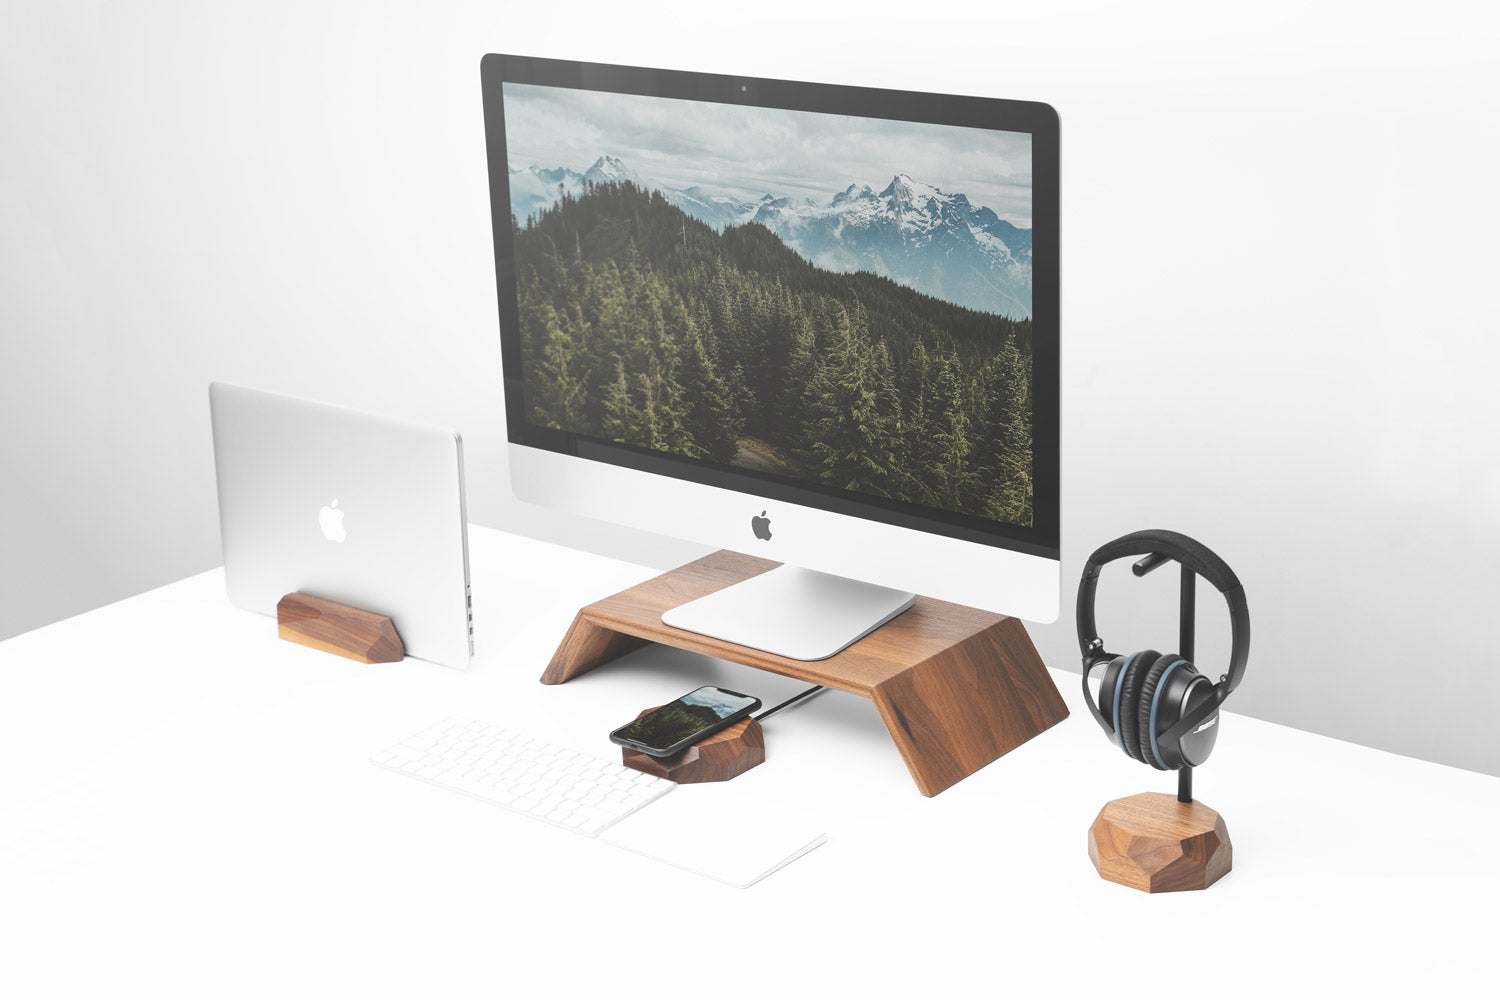 wooden laptop & monitor accessories by Oakywood